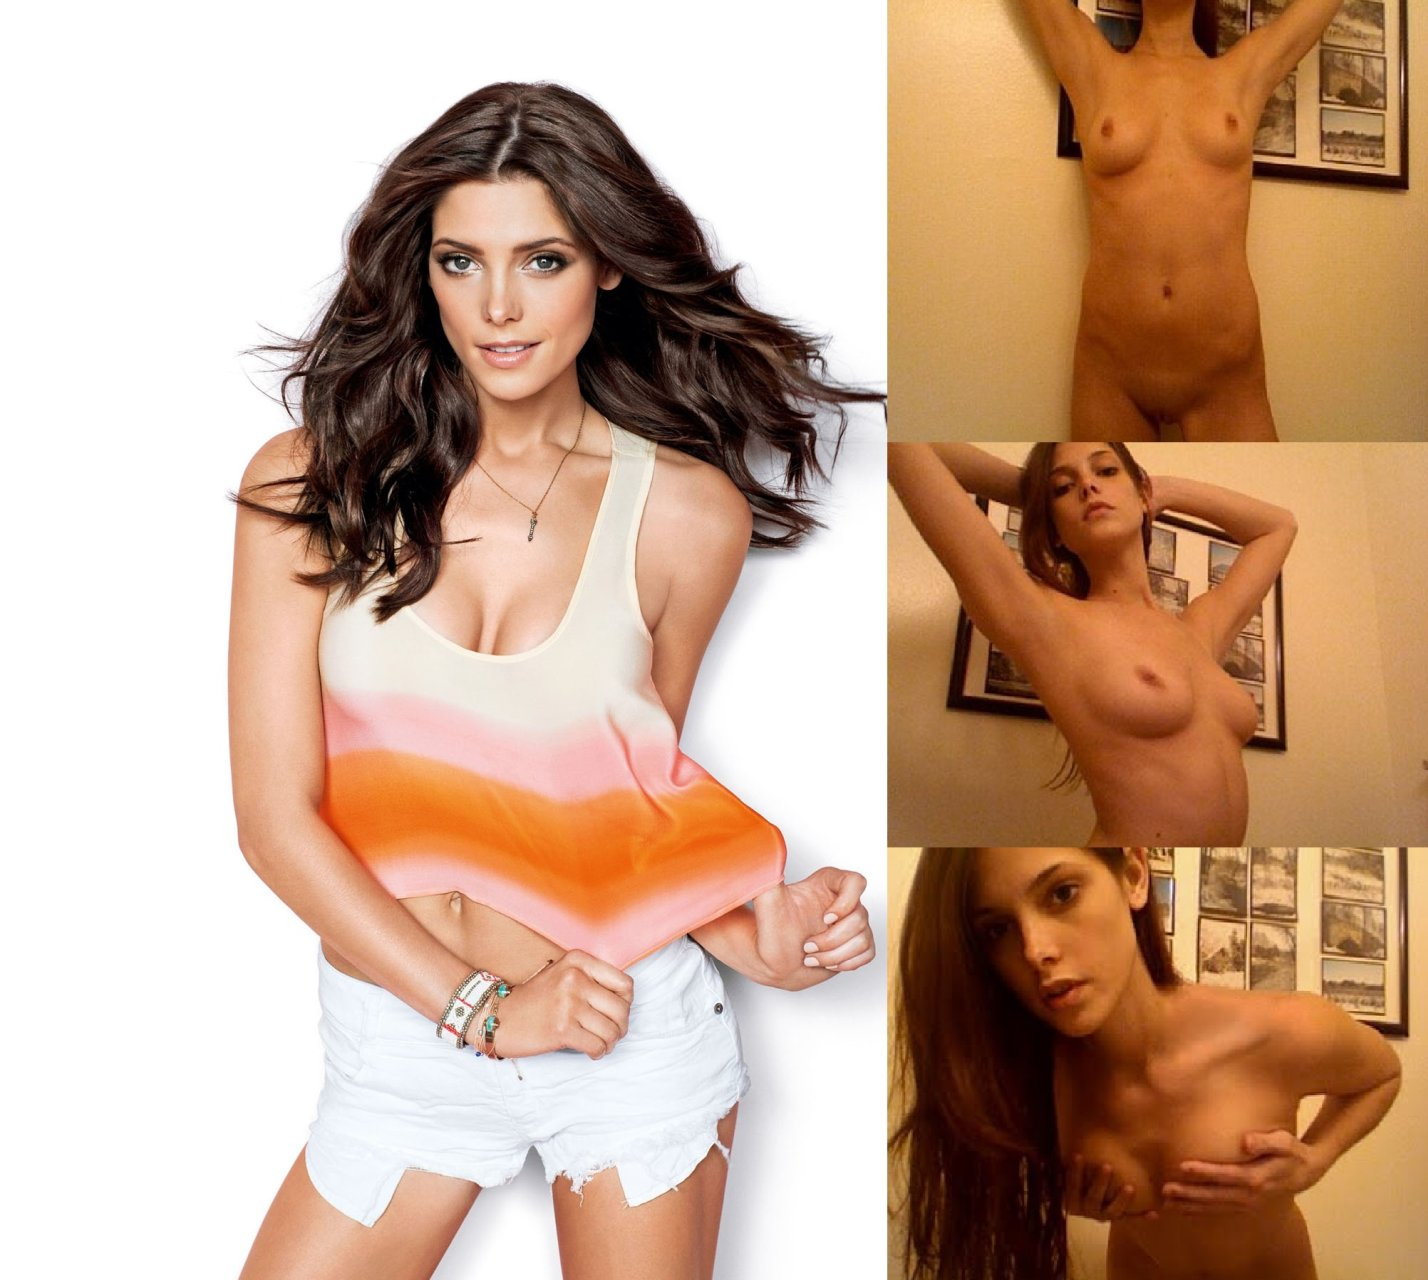 Nudes Ashley greene celebrity